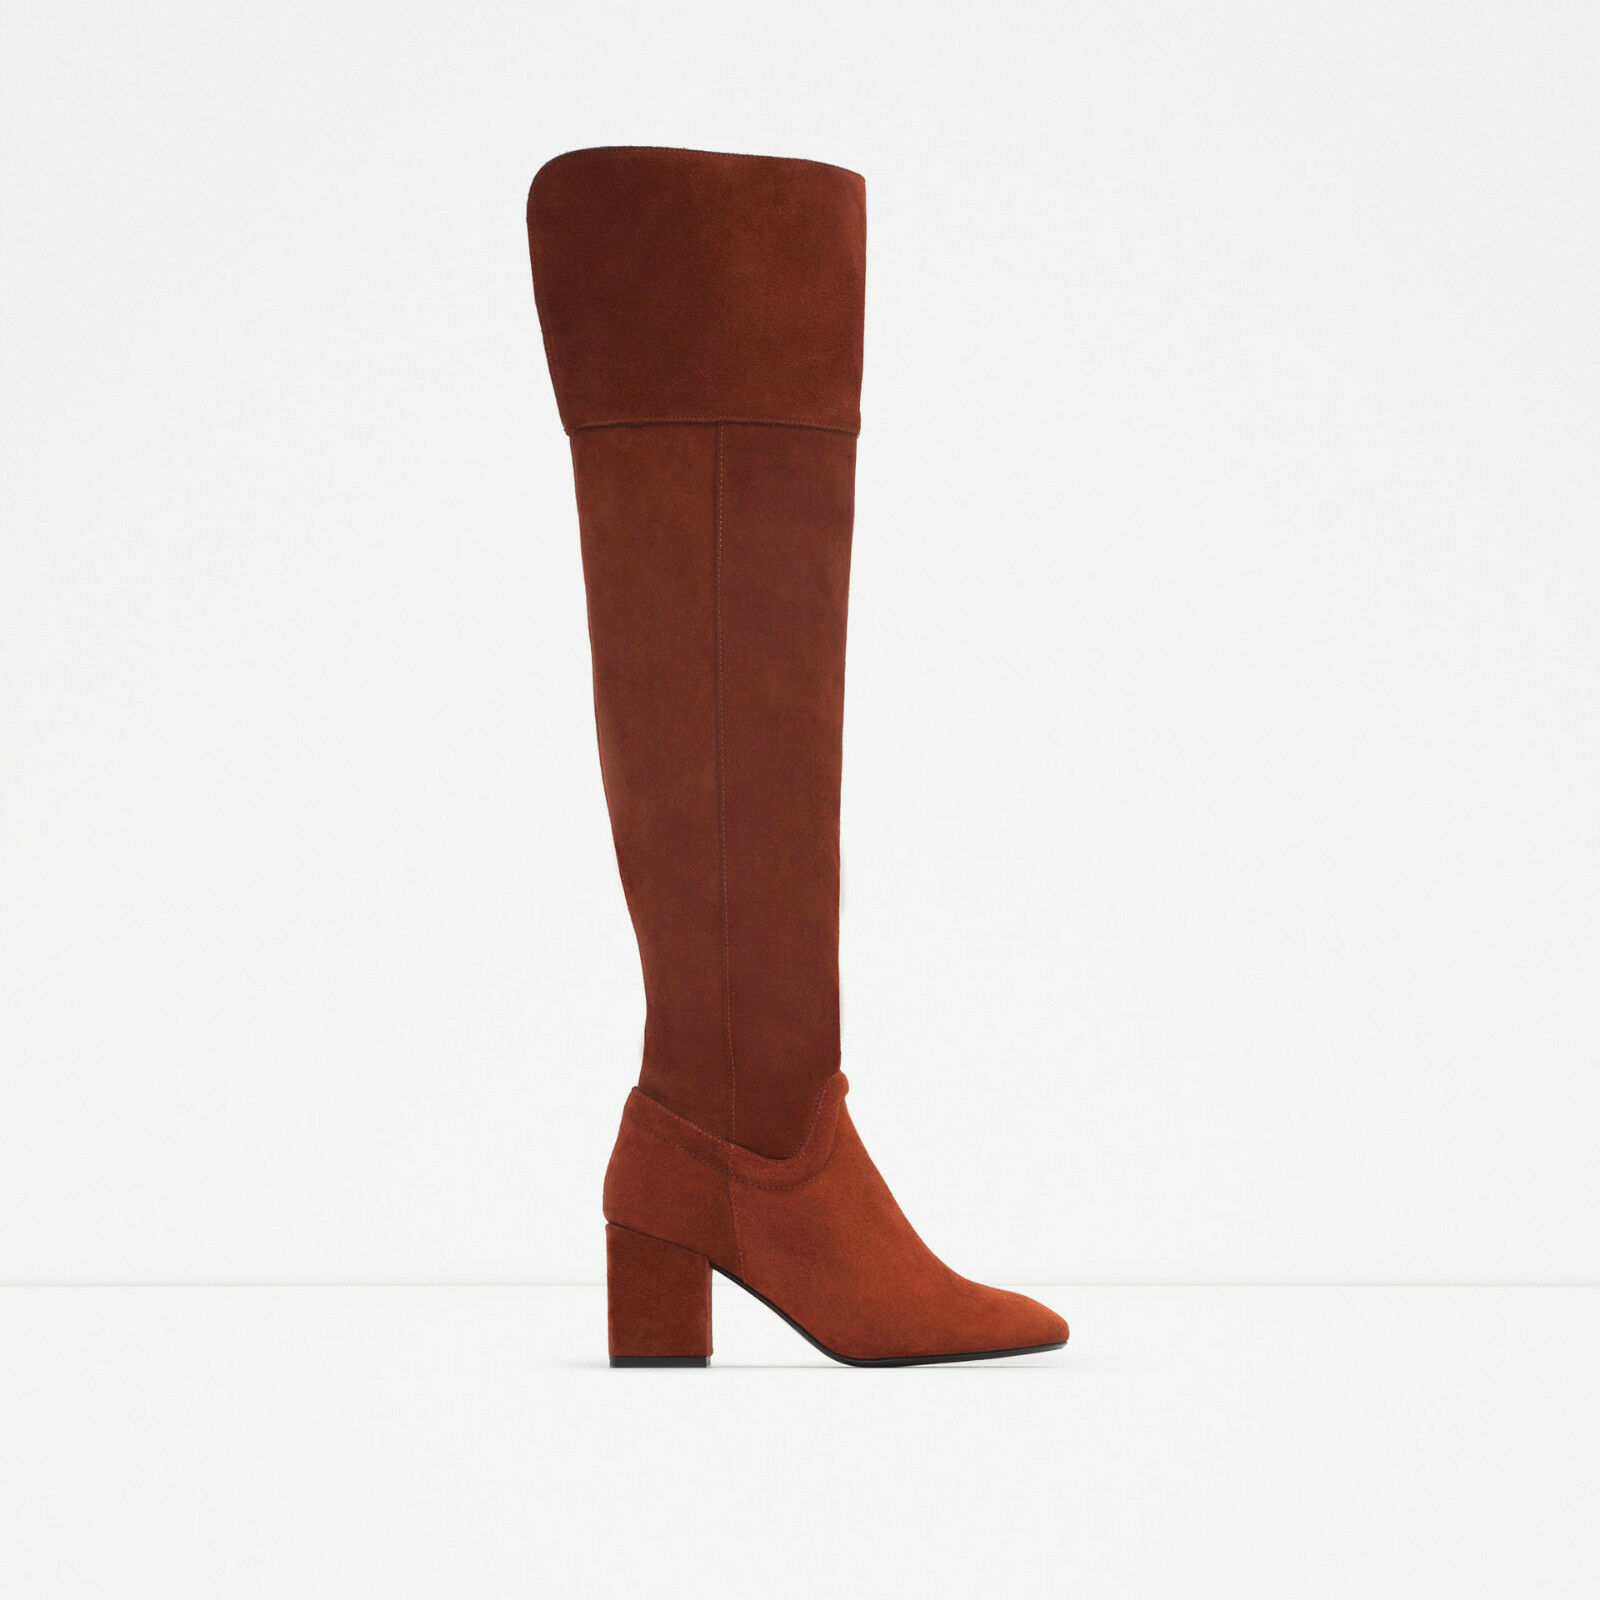 ZARA Over The Knee Boot Boiler Red Leather Autumn Winter 2015 UK4 EU37 US6 NEW